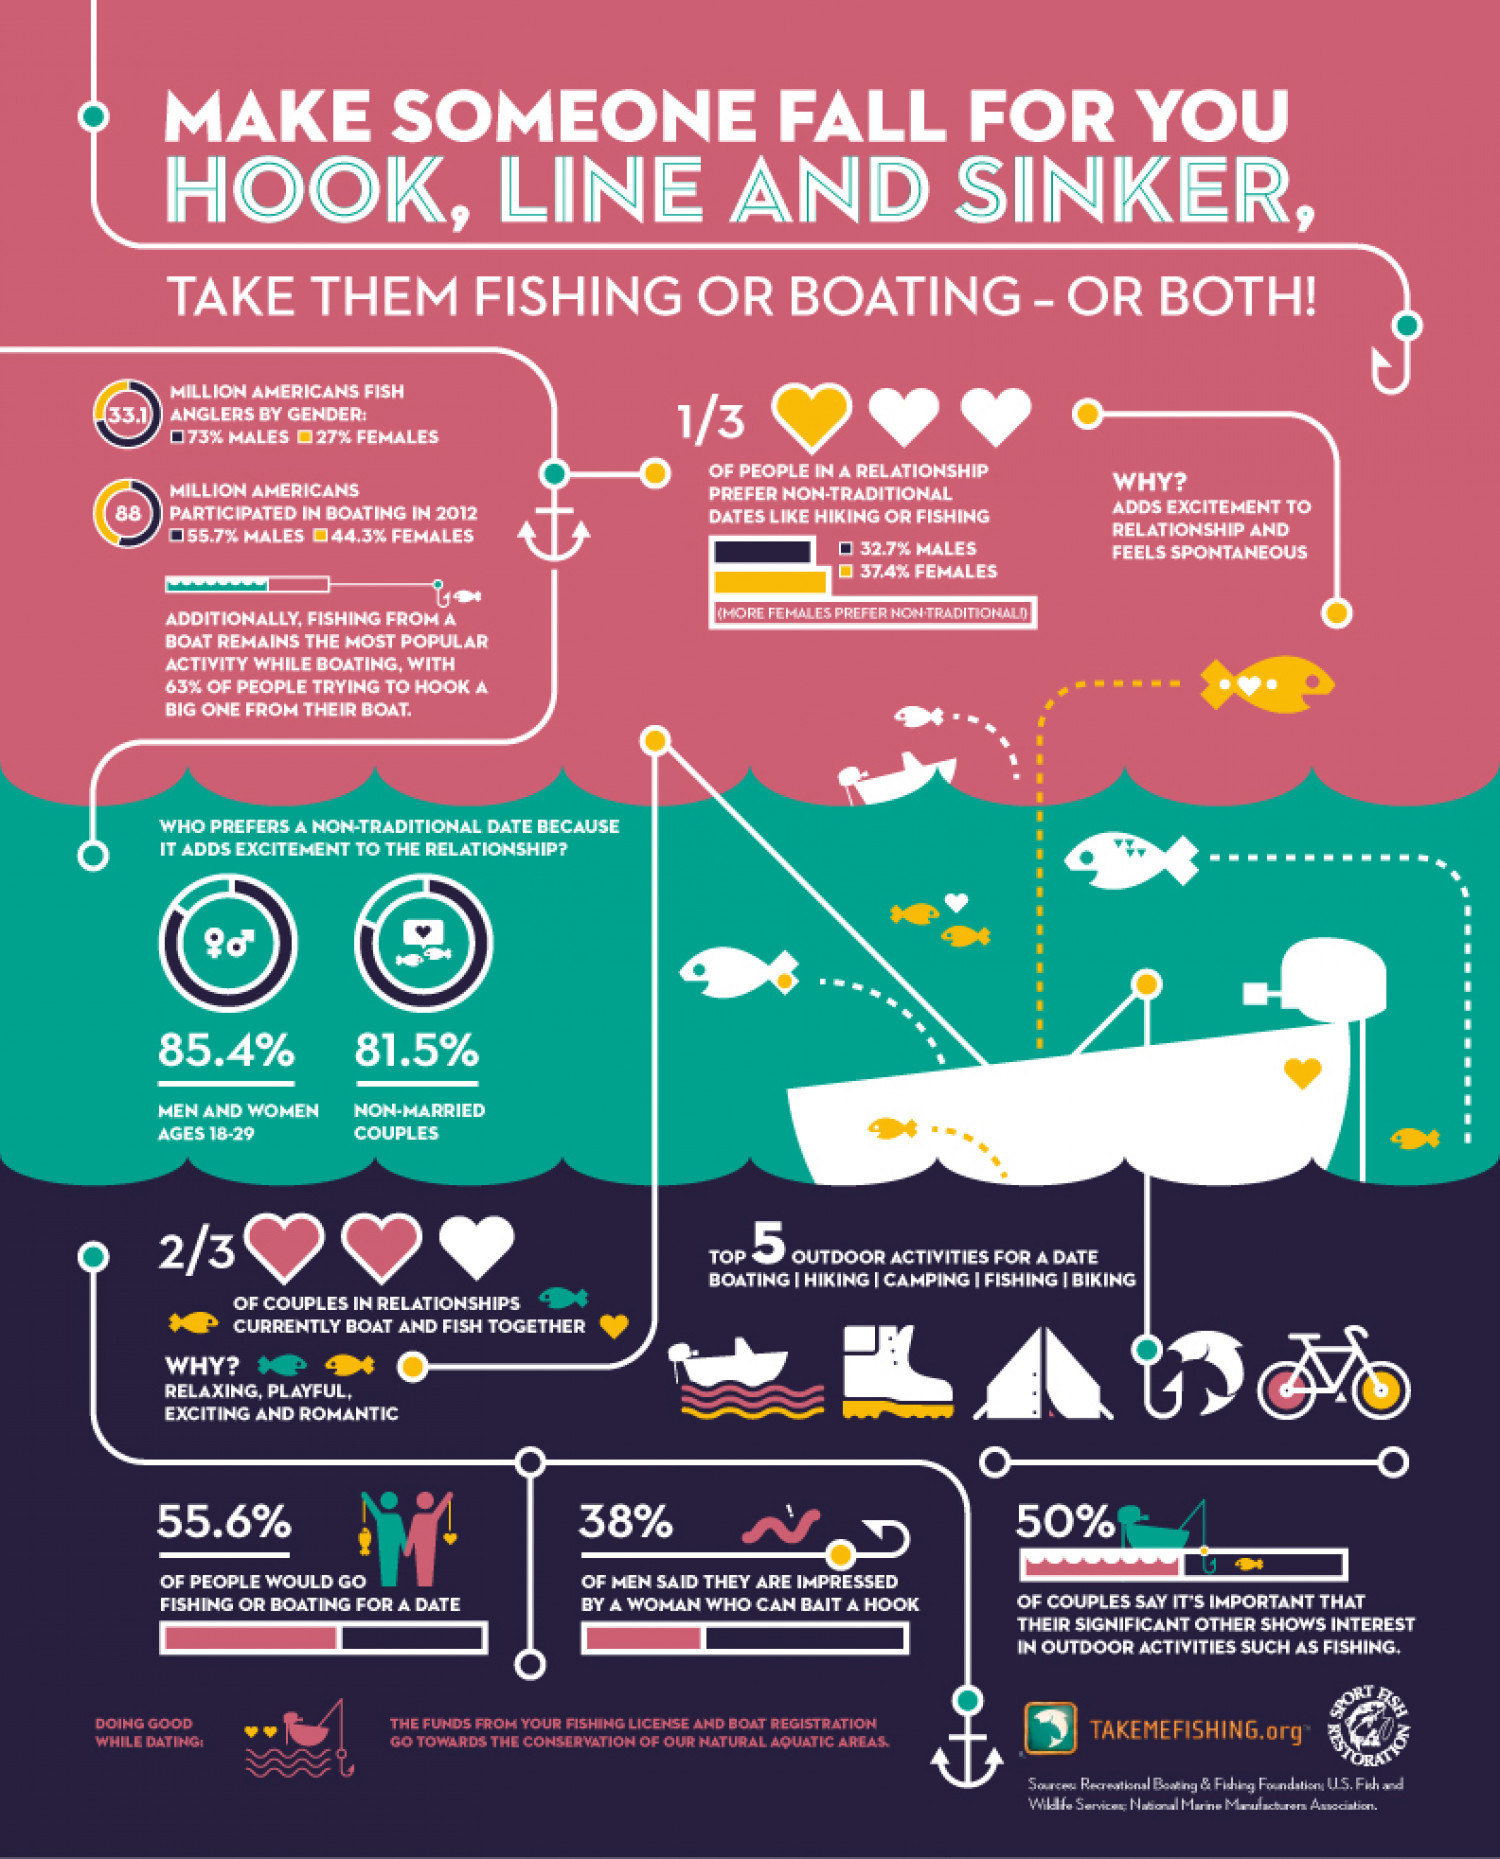 Fishing Helps Spark Romance in Relationships Infographic